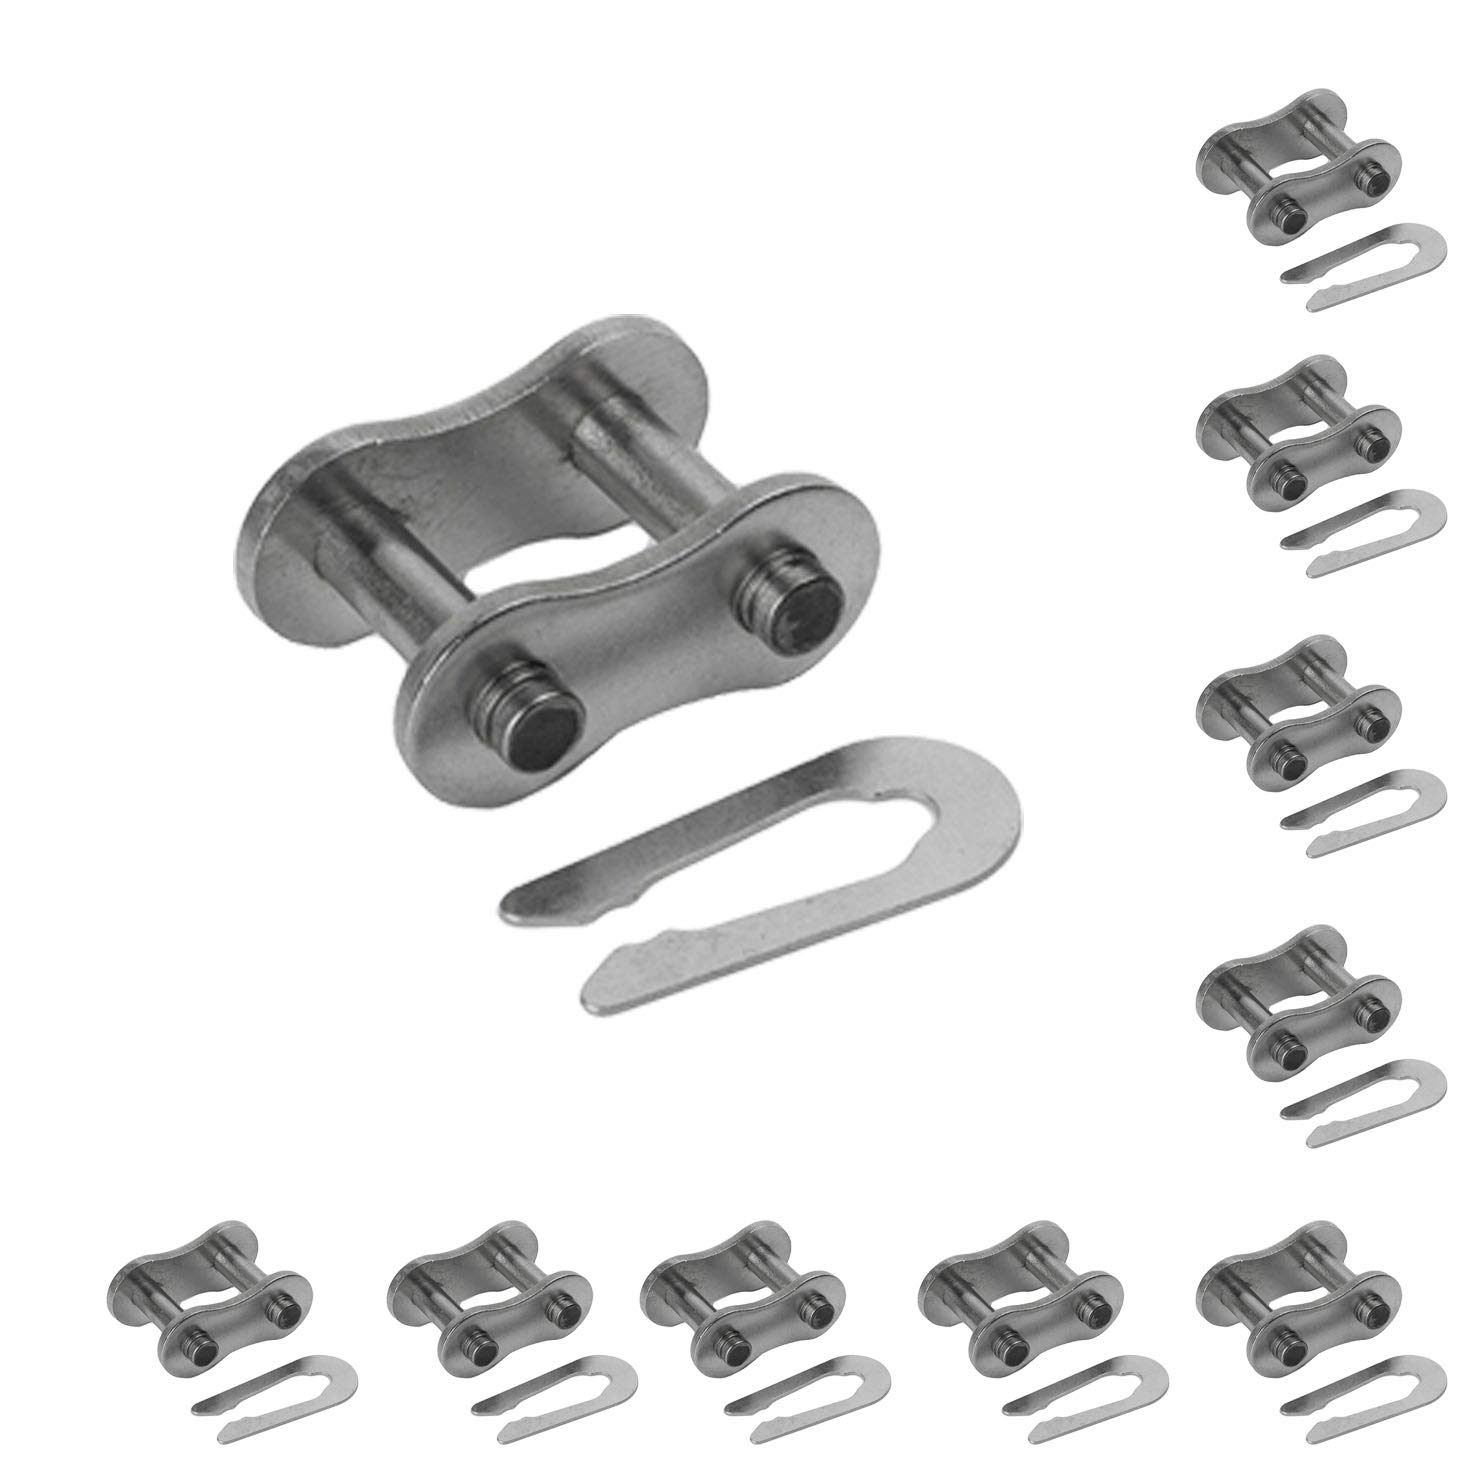 10-PCS 41NP Nickel Plated Connecting Link Roller Chain Master Link ANSI Standard